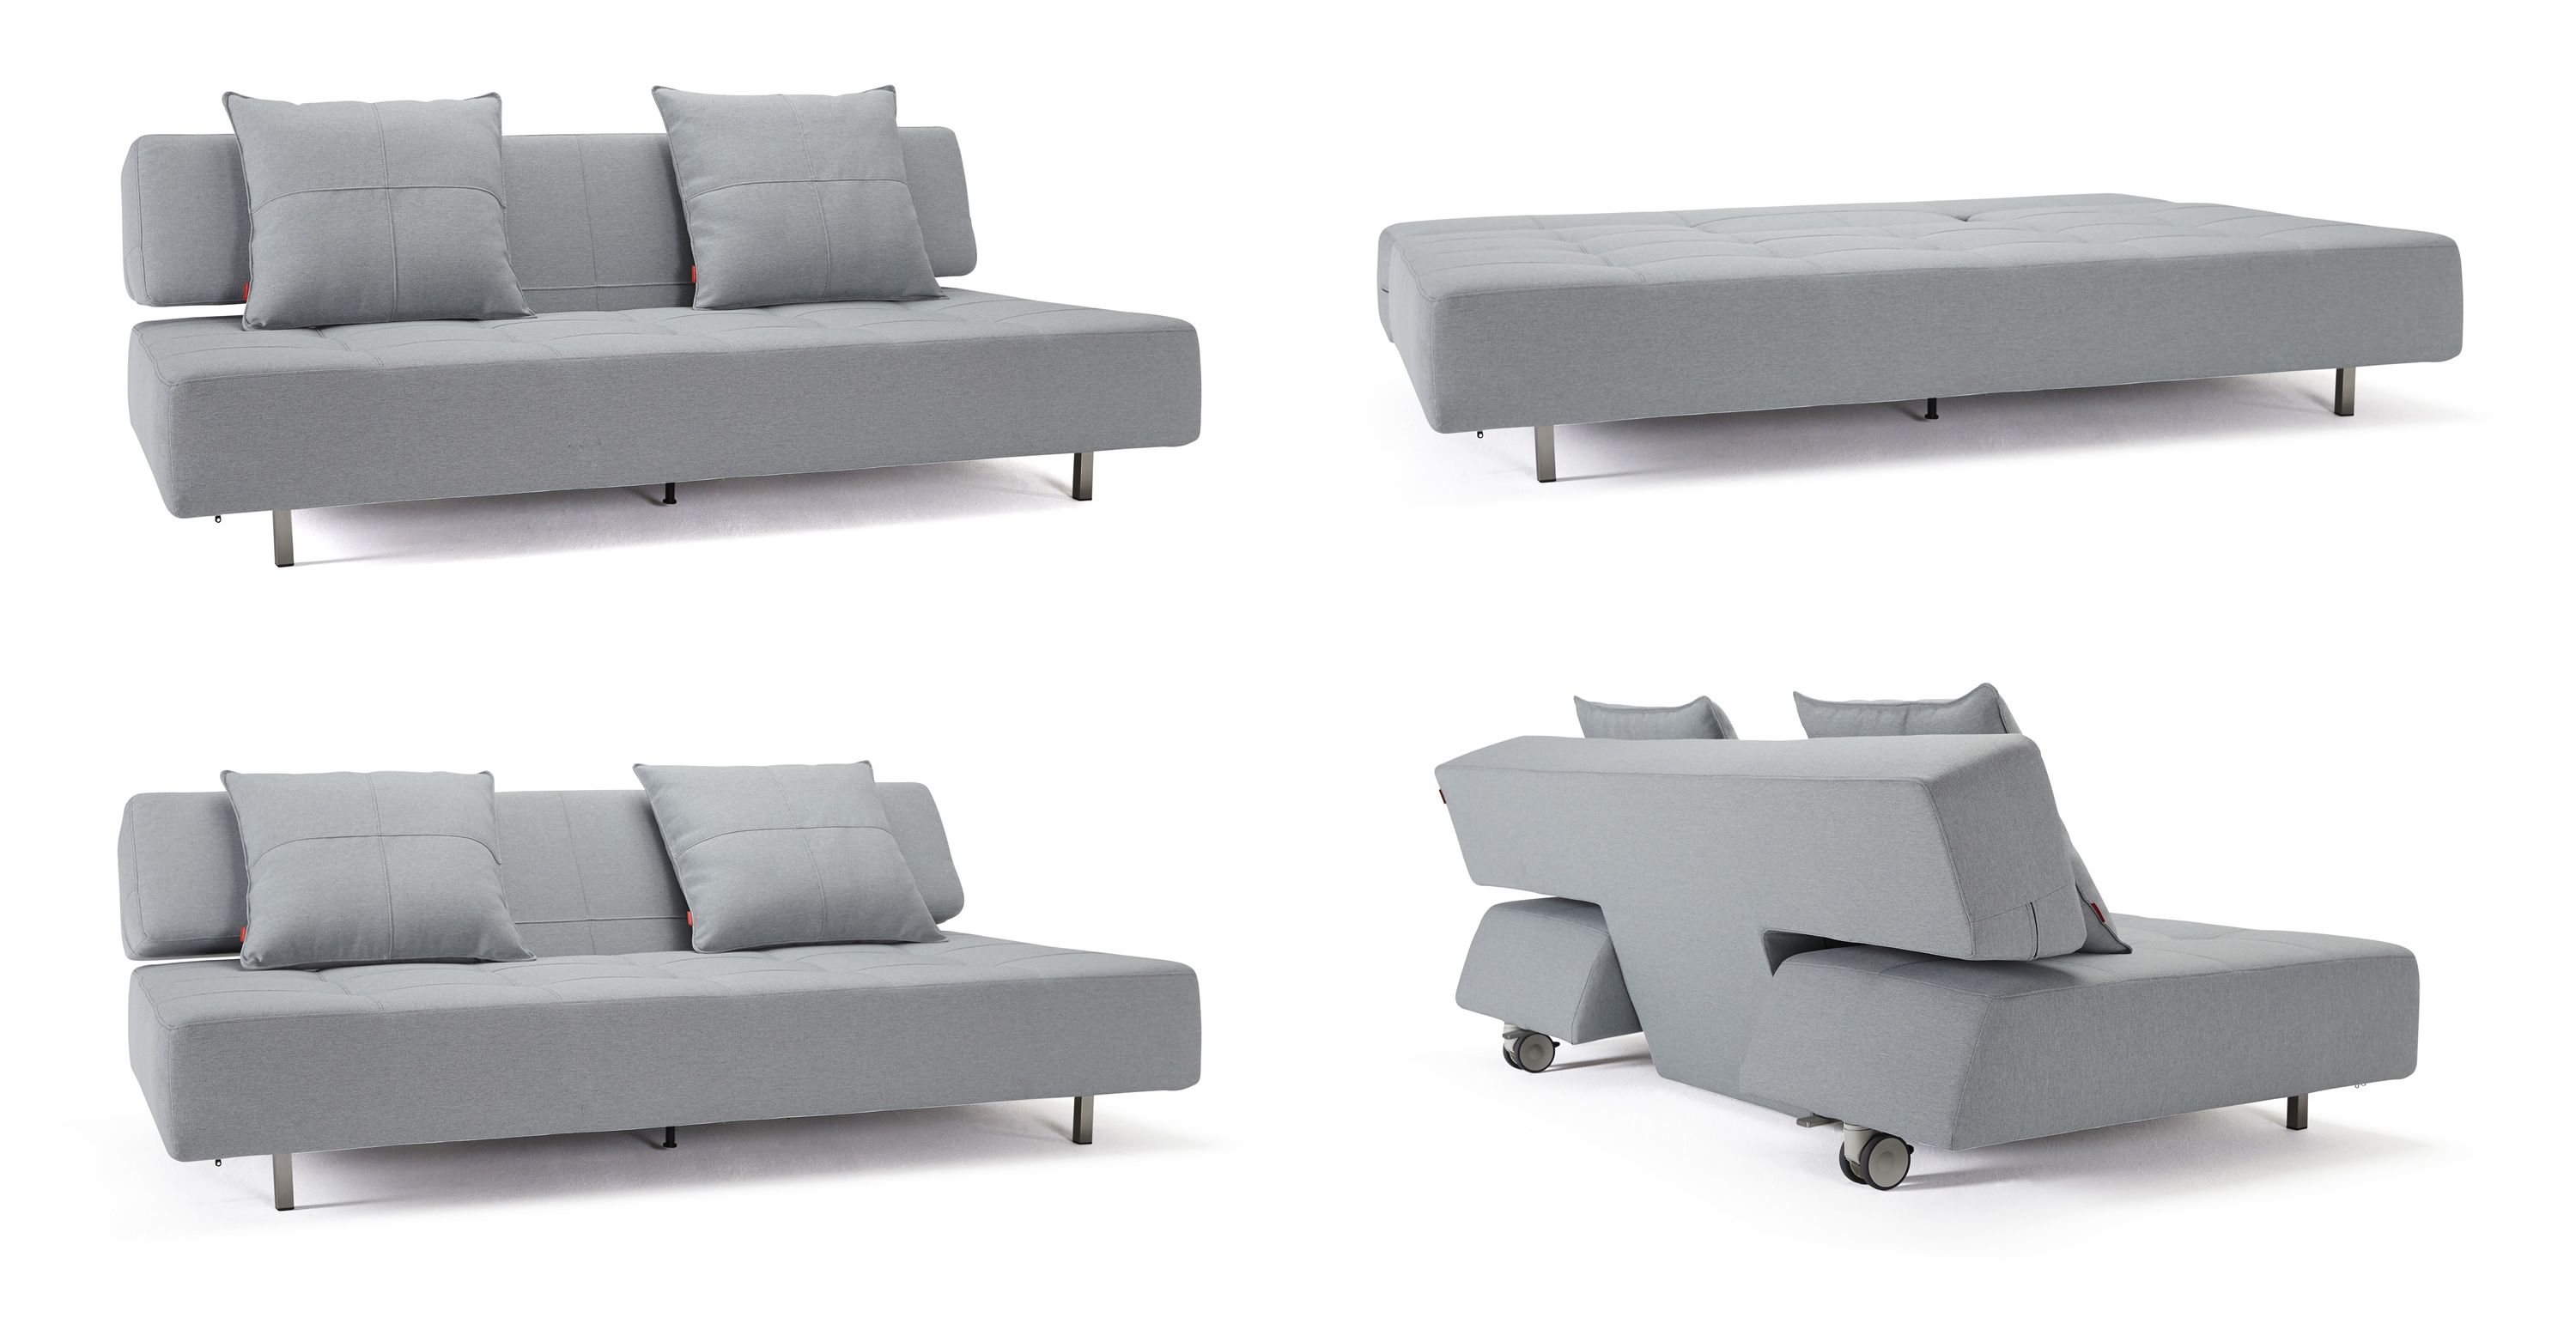 Online Store With Unique Selection Of Home And Office Furniture Furniture Buy Furniture Online Home